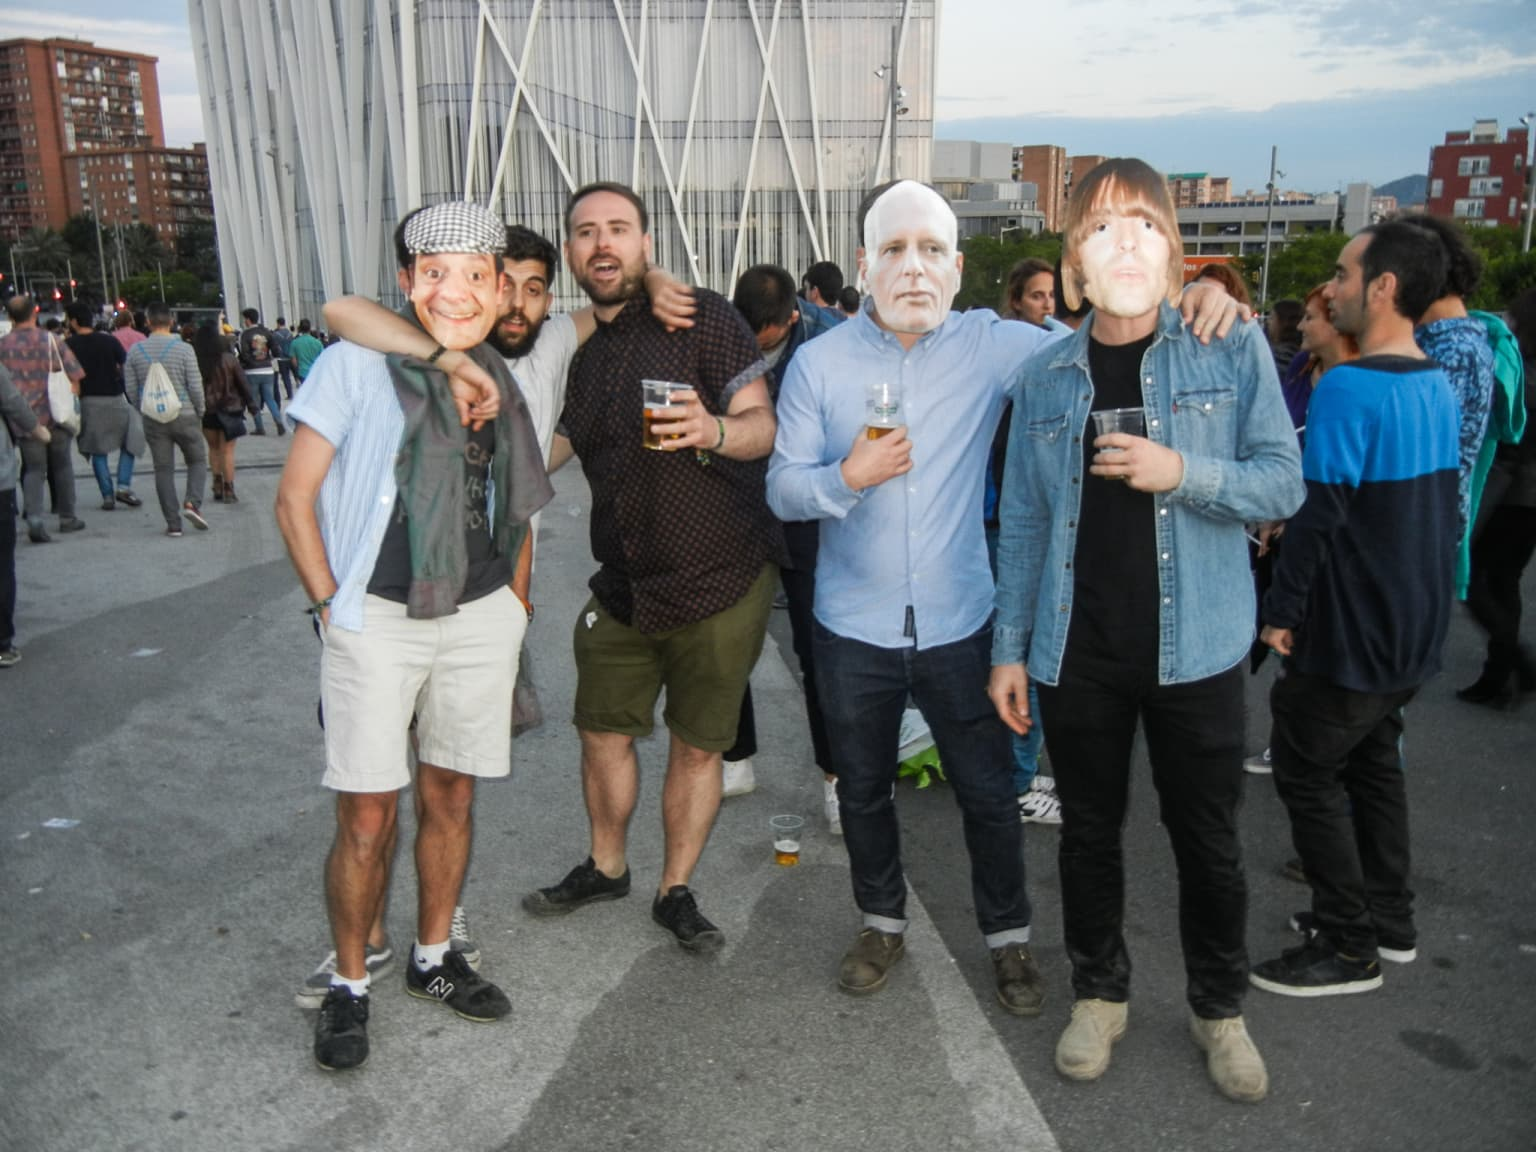 The Peculiar Sadness of Going to a Music Festival Alone (May 2016)